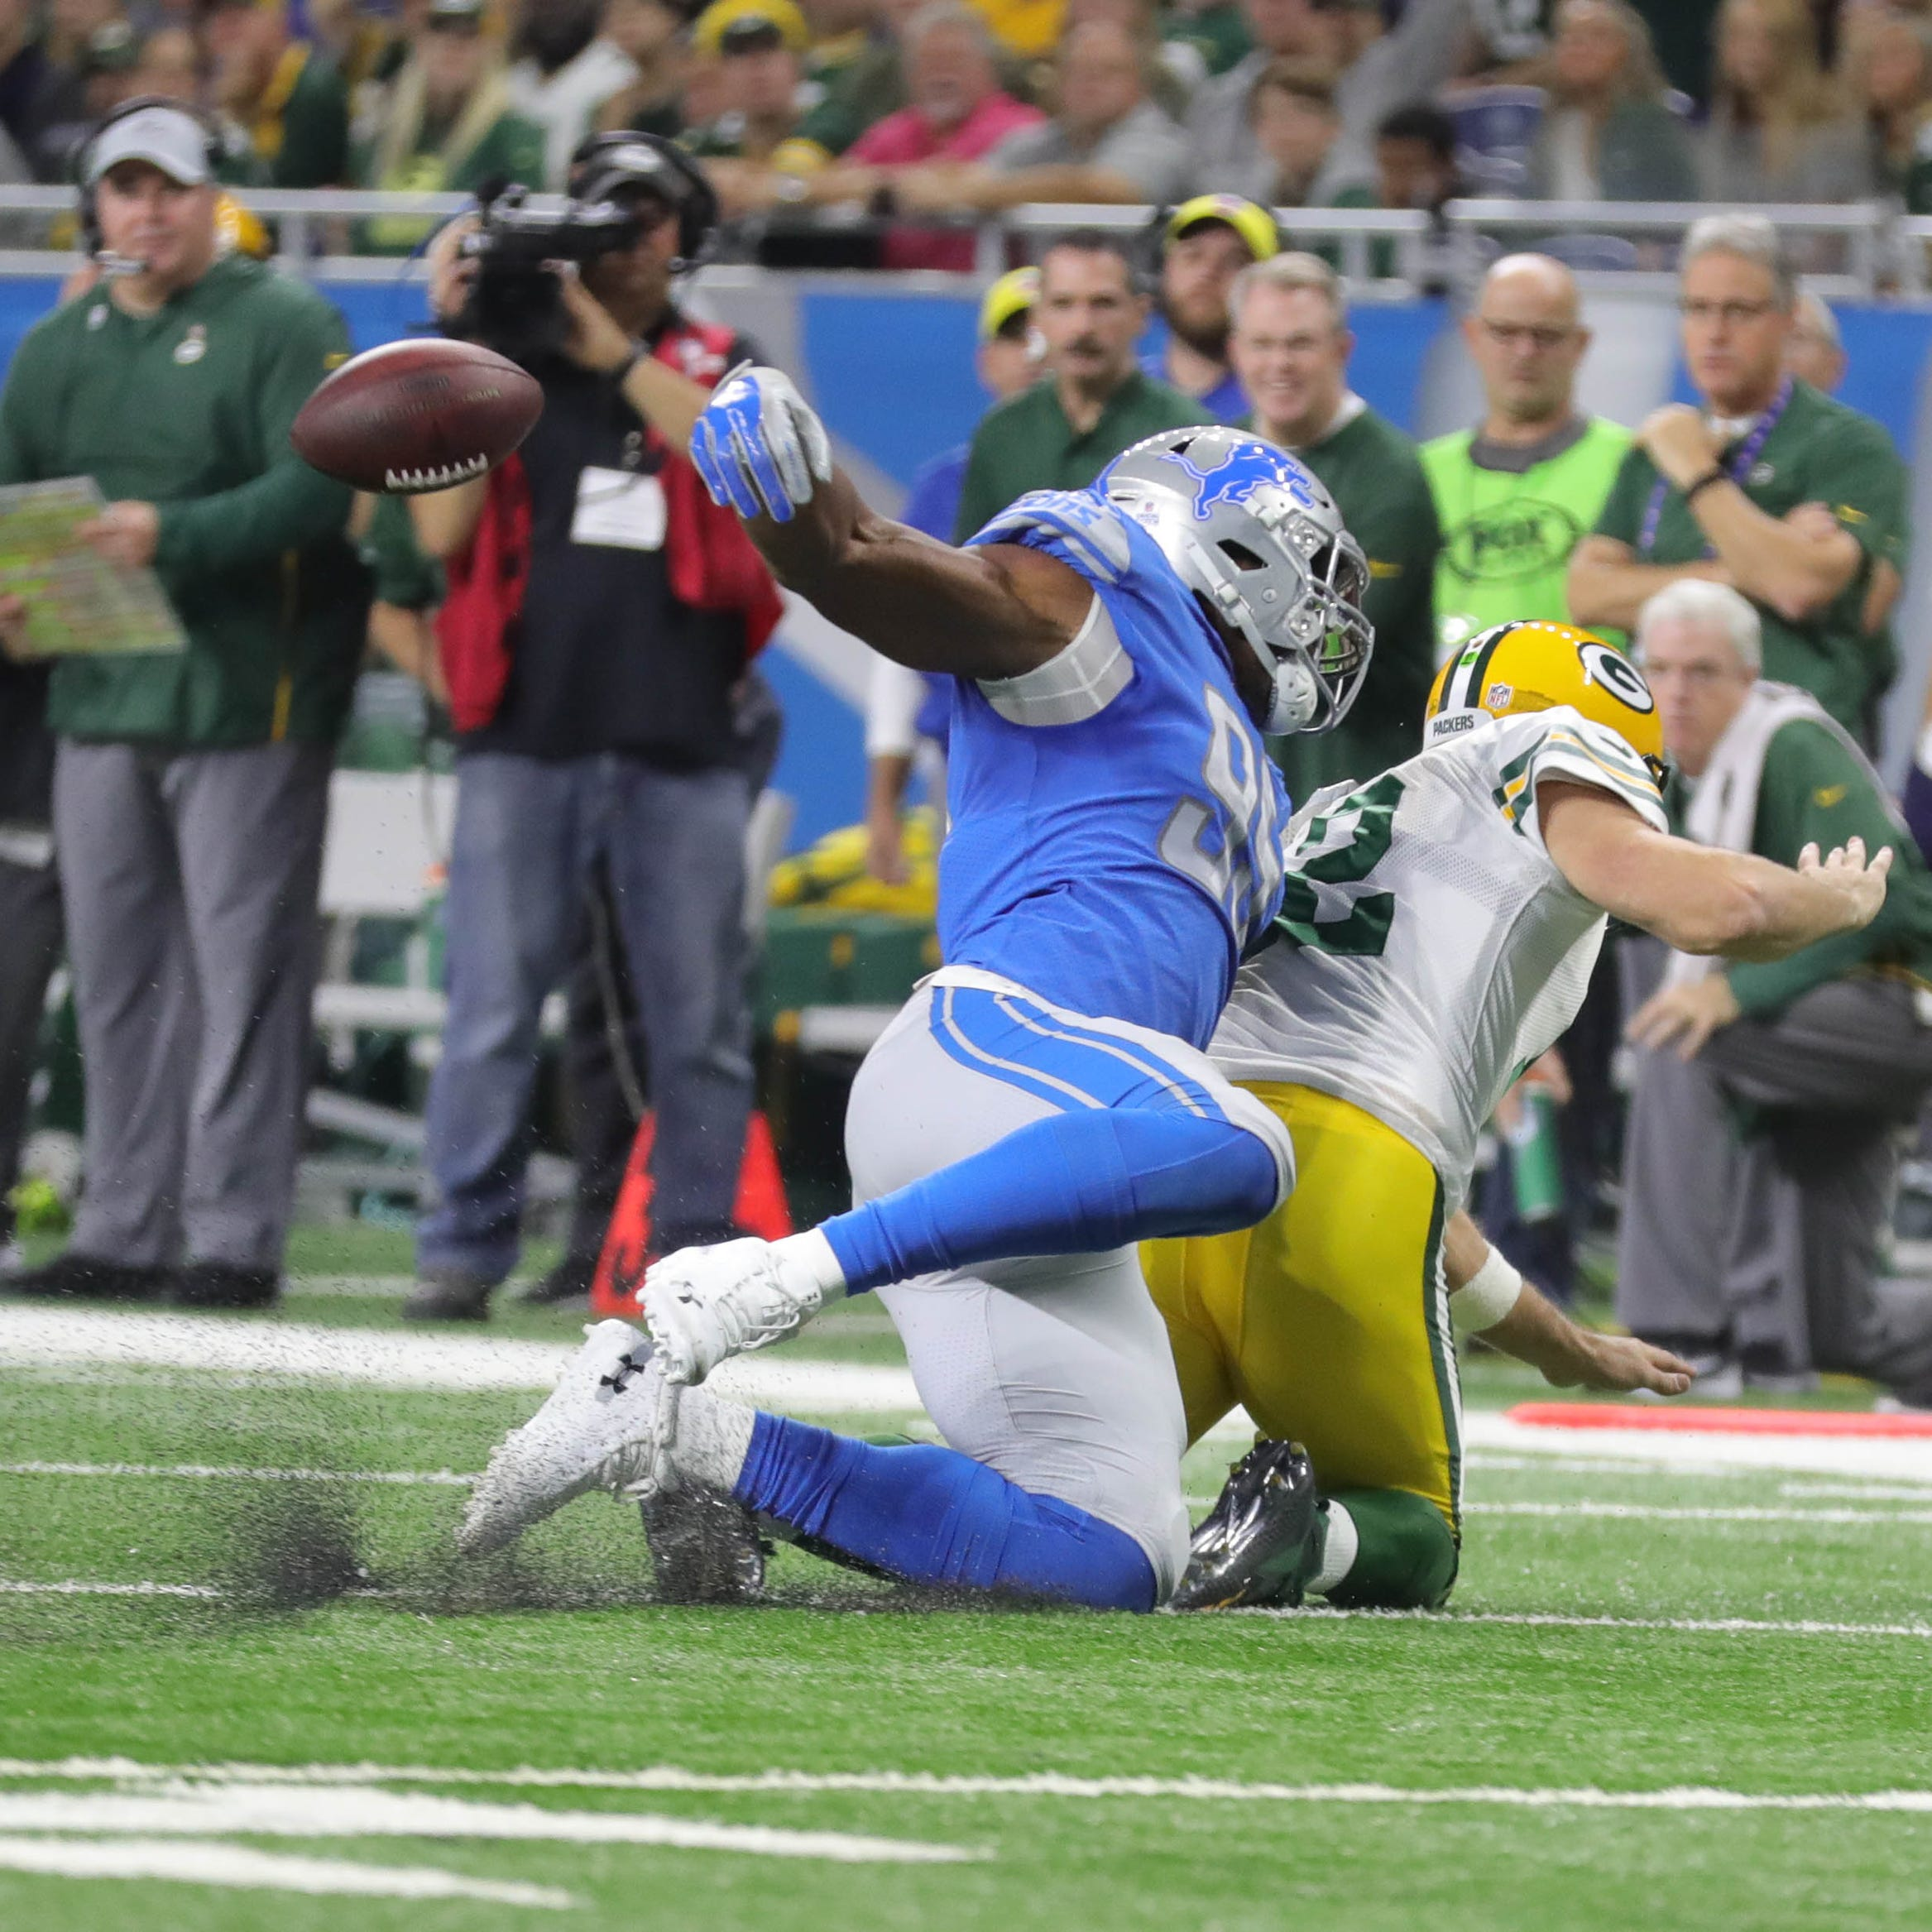 Mitch Albom: Detroit Lions corral Packers' Aaron Rodgers for a change